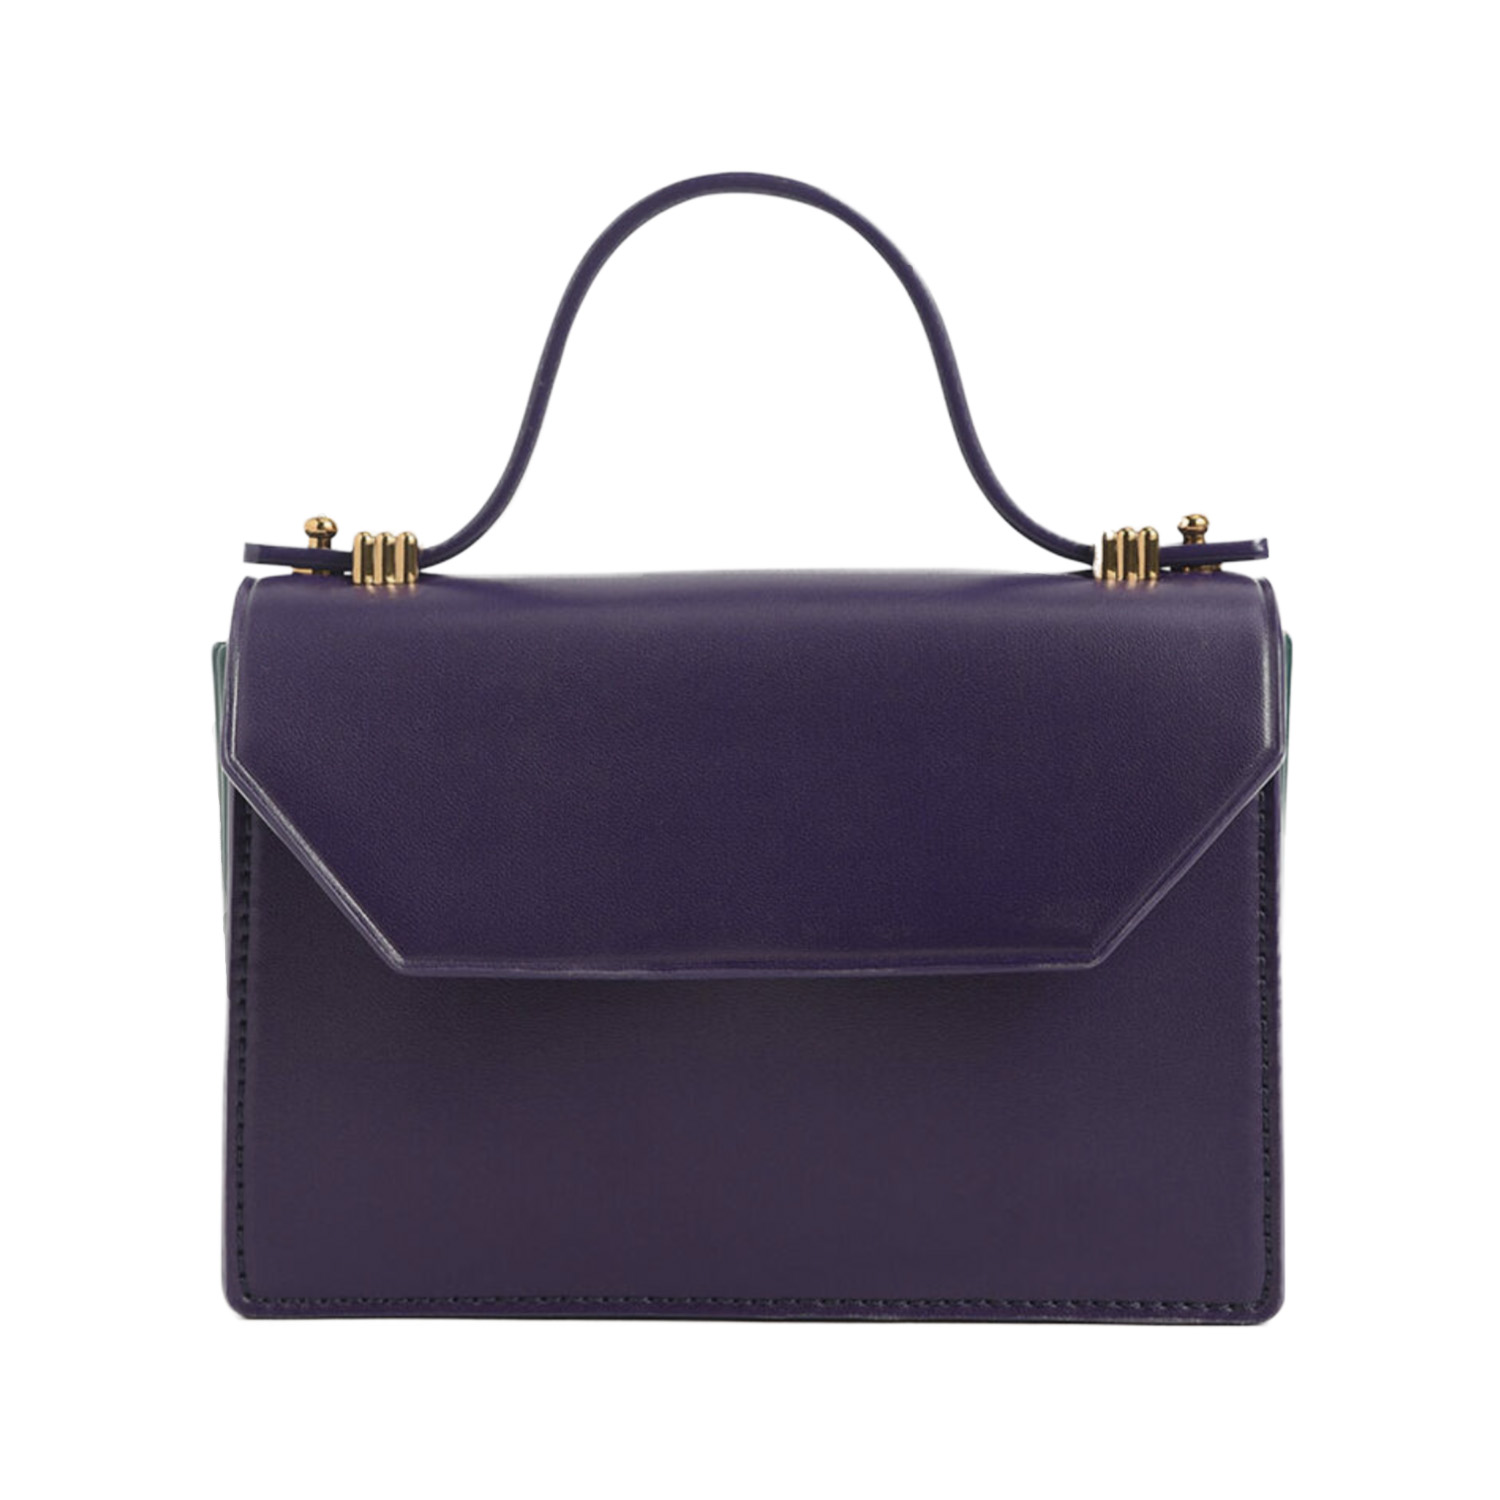 Charles Kieth Purple Bag